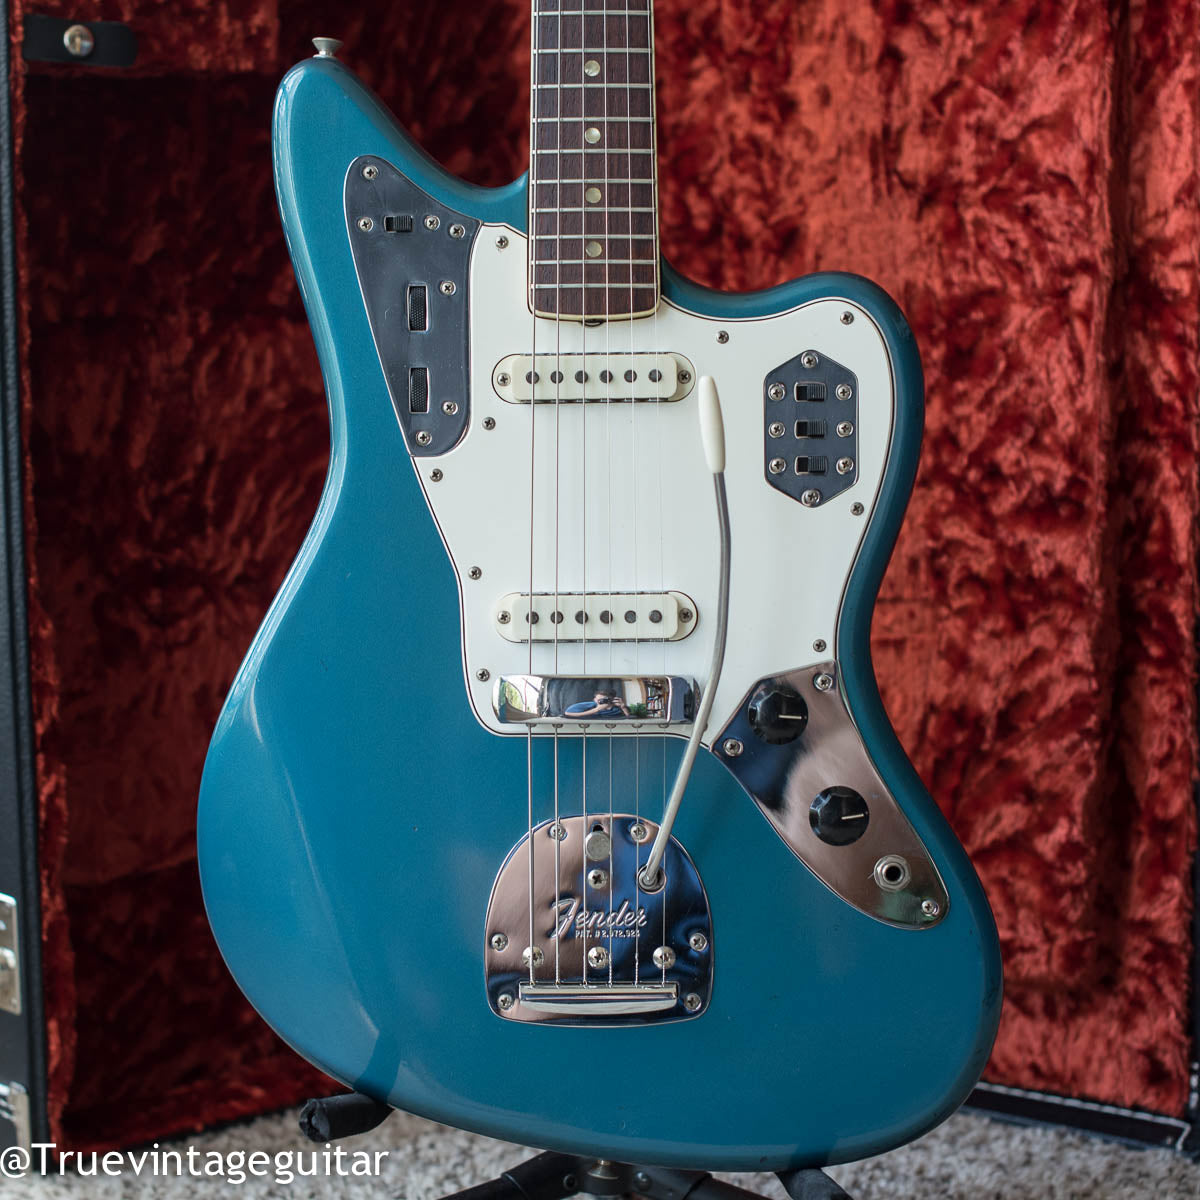 Vintage 1966 Fender Jaguar Guitar Lake Placid Blue